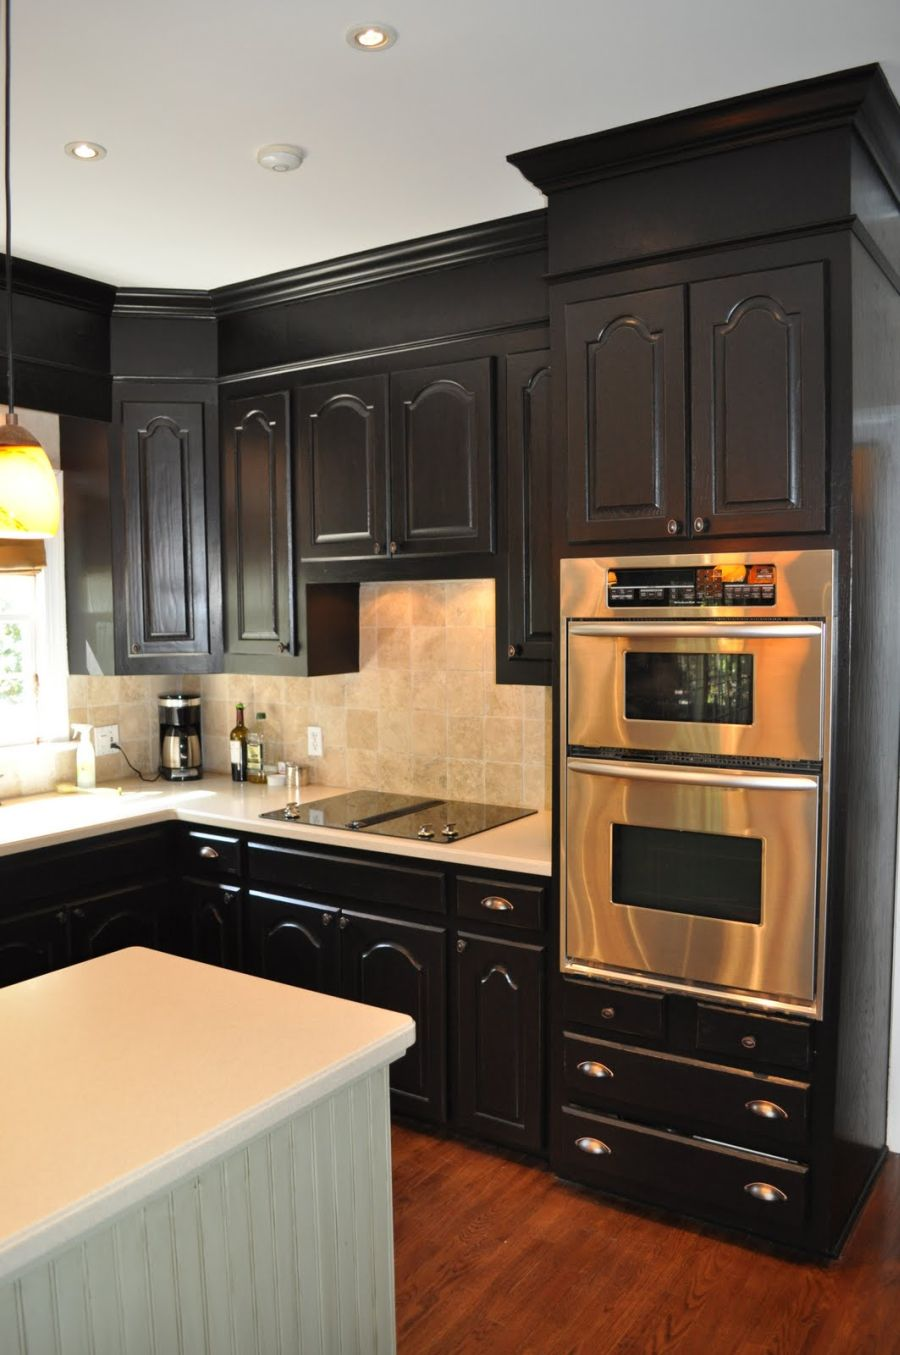 black kitchen cabinets pictures of kitchen cabinets Black Cabinets with Soffits